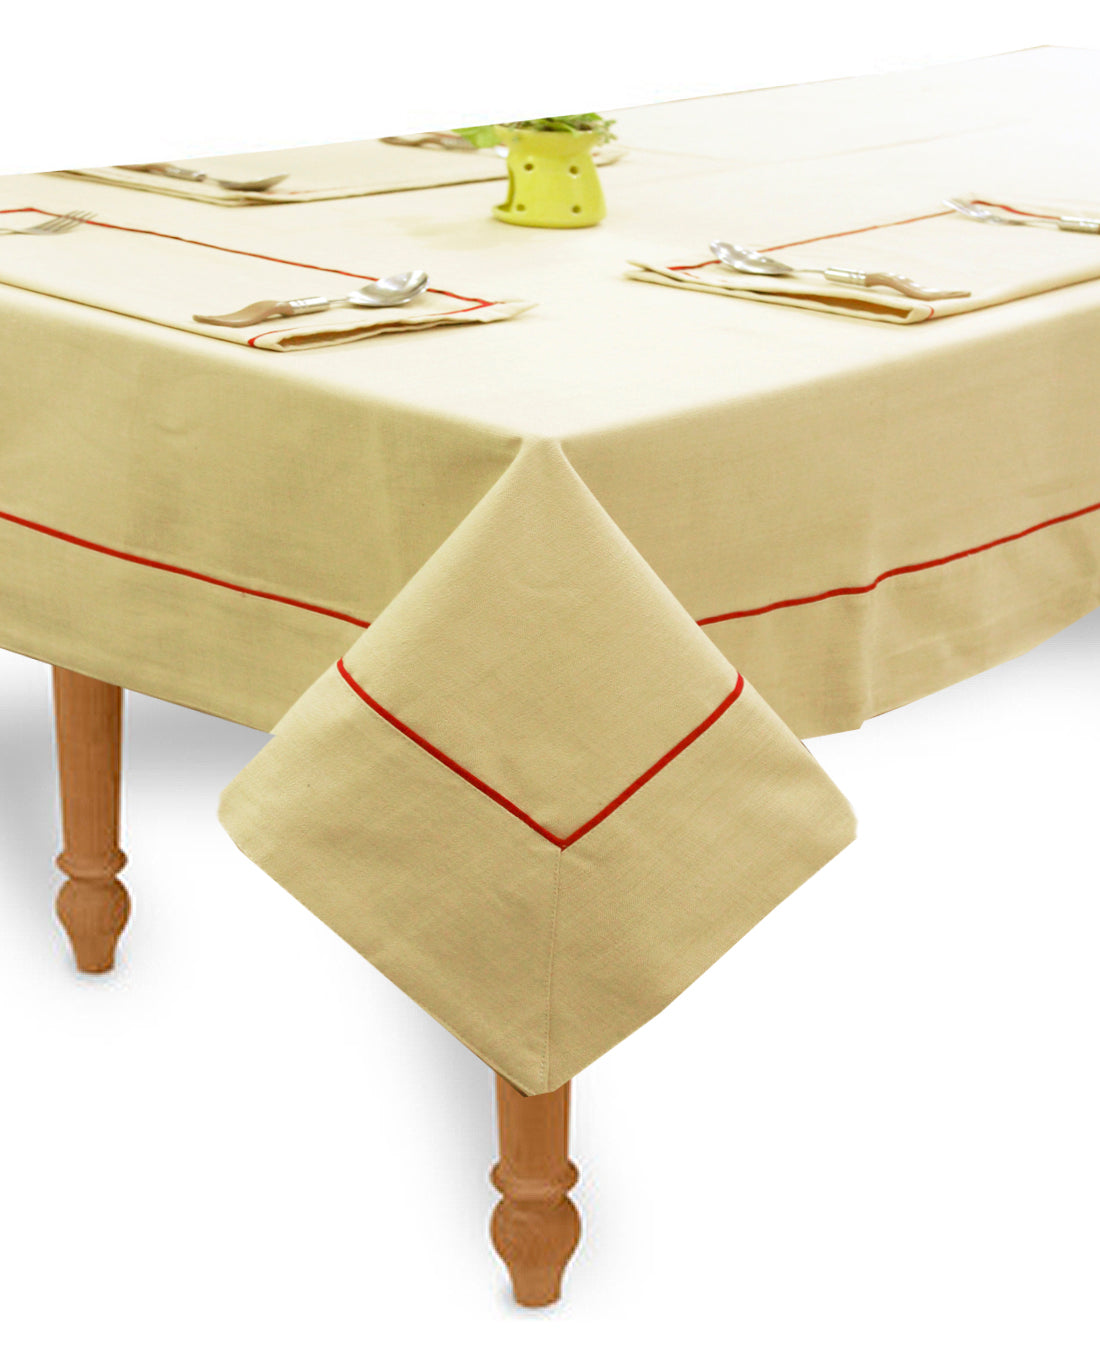 "AURAVE Woven Cotton 200 TC 60""x90"" Plain Table Cover (Beige)"